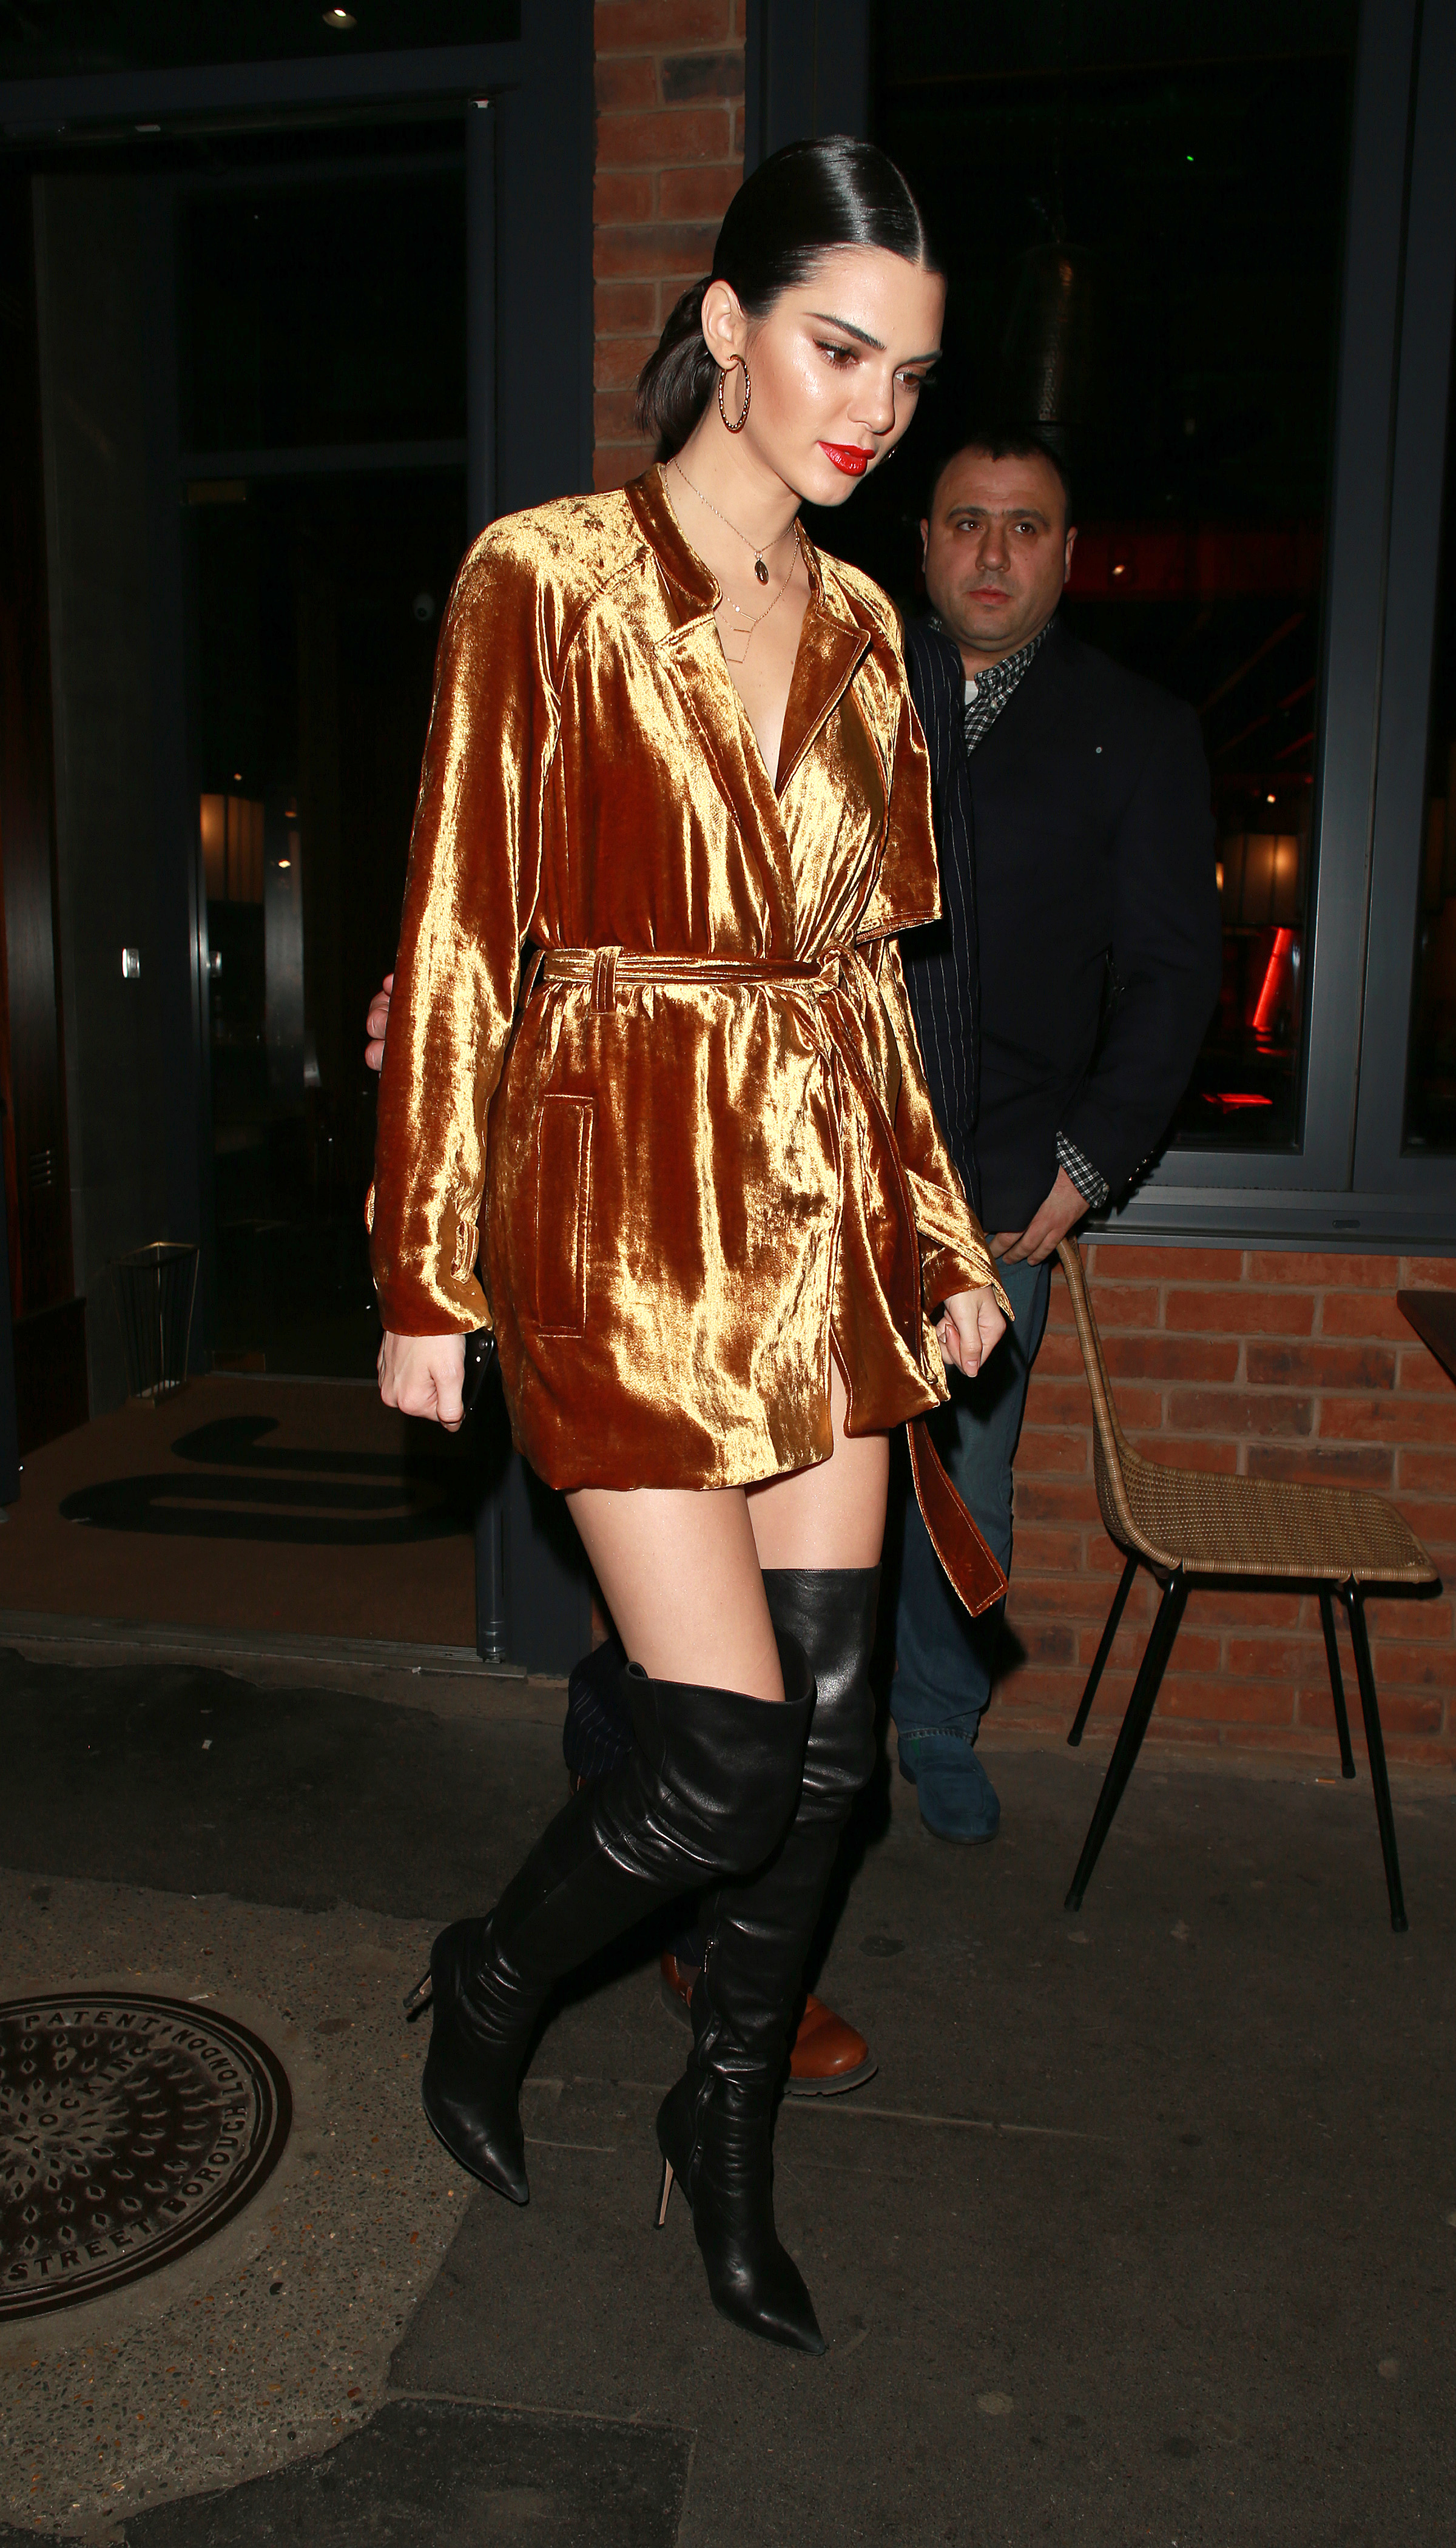 Kendall Jenner Style - Kendall Jenner's Best Outfits Cate Blanchett Relationships